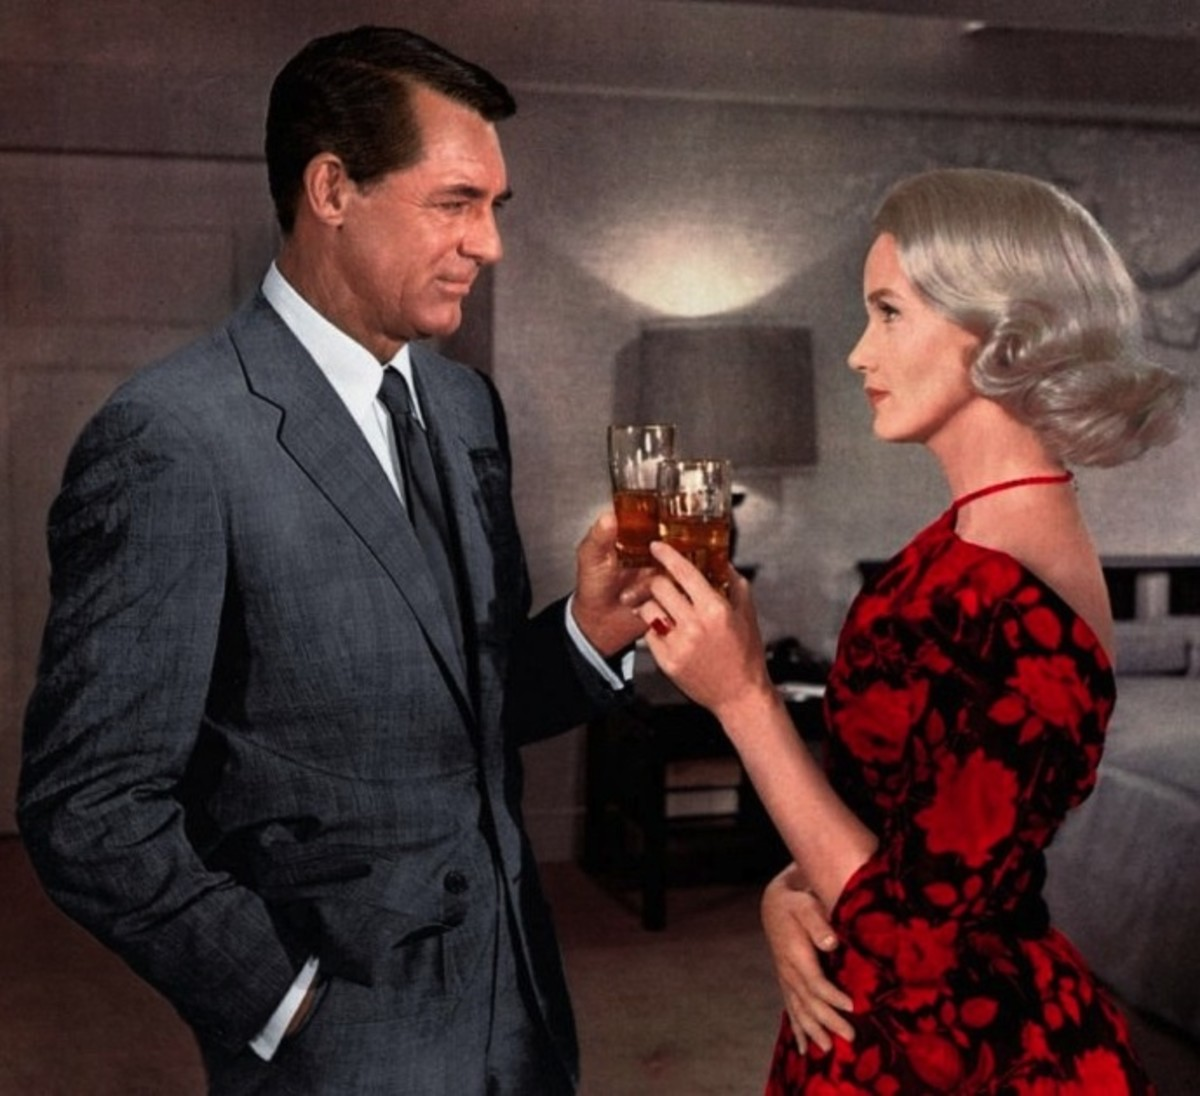 """Eva Marie Saint pictured here with Cary Grant in Alfred Hitchcock's 1959 film """"North By Northwest""""."""